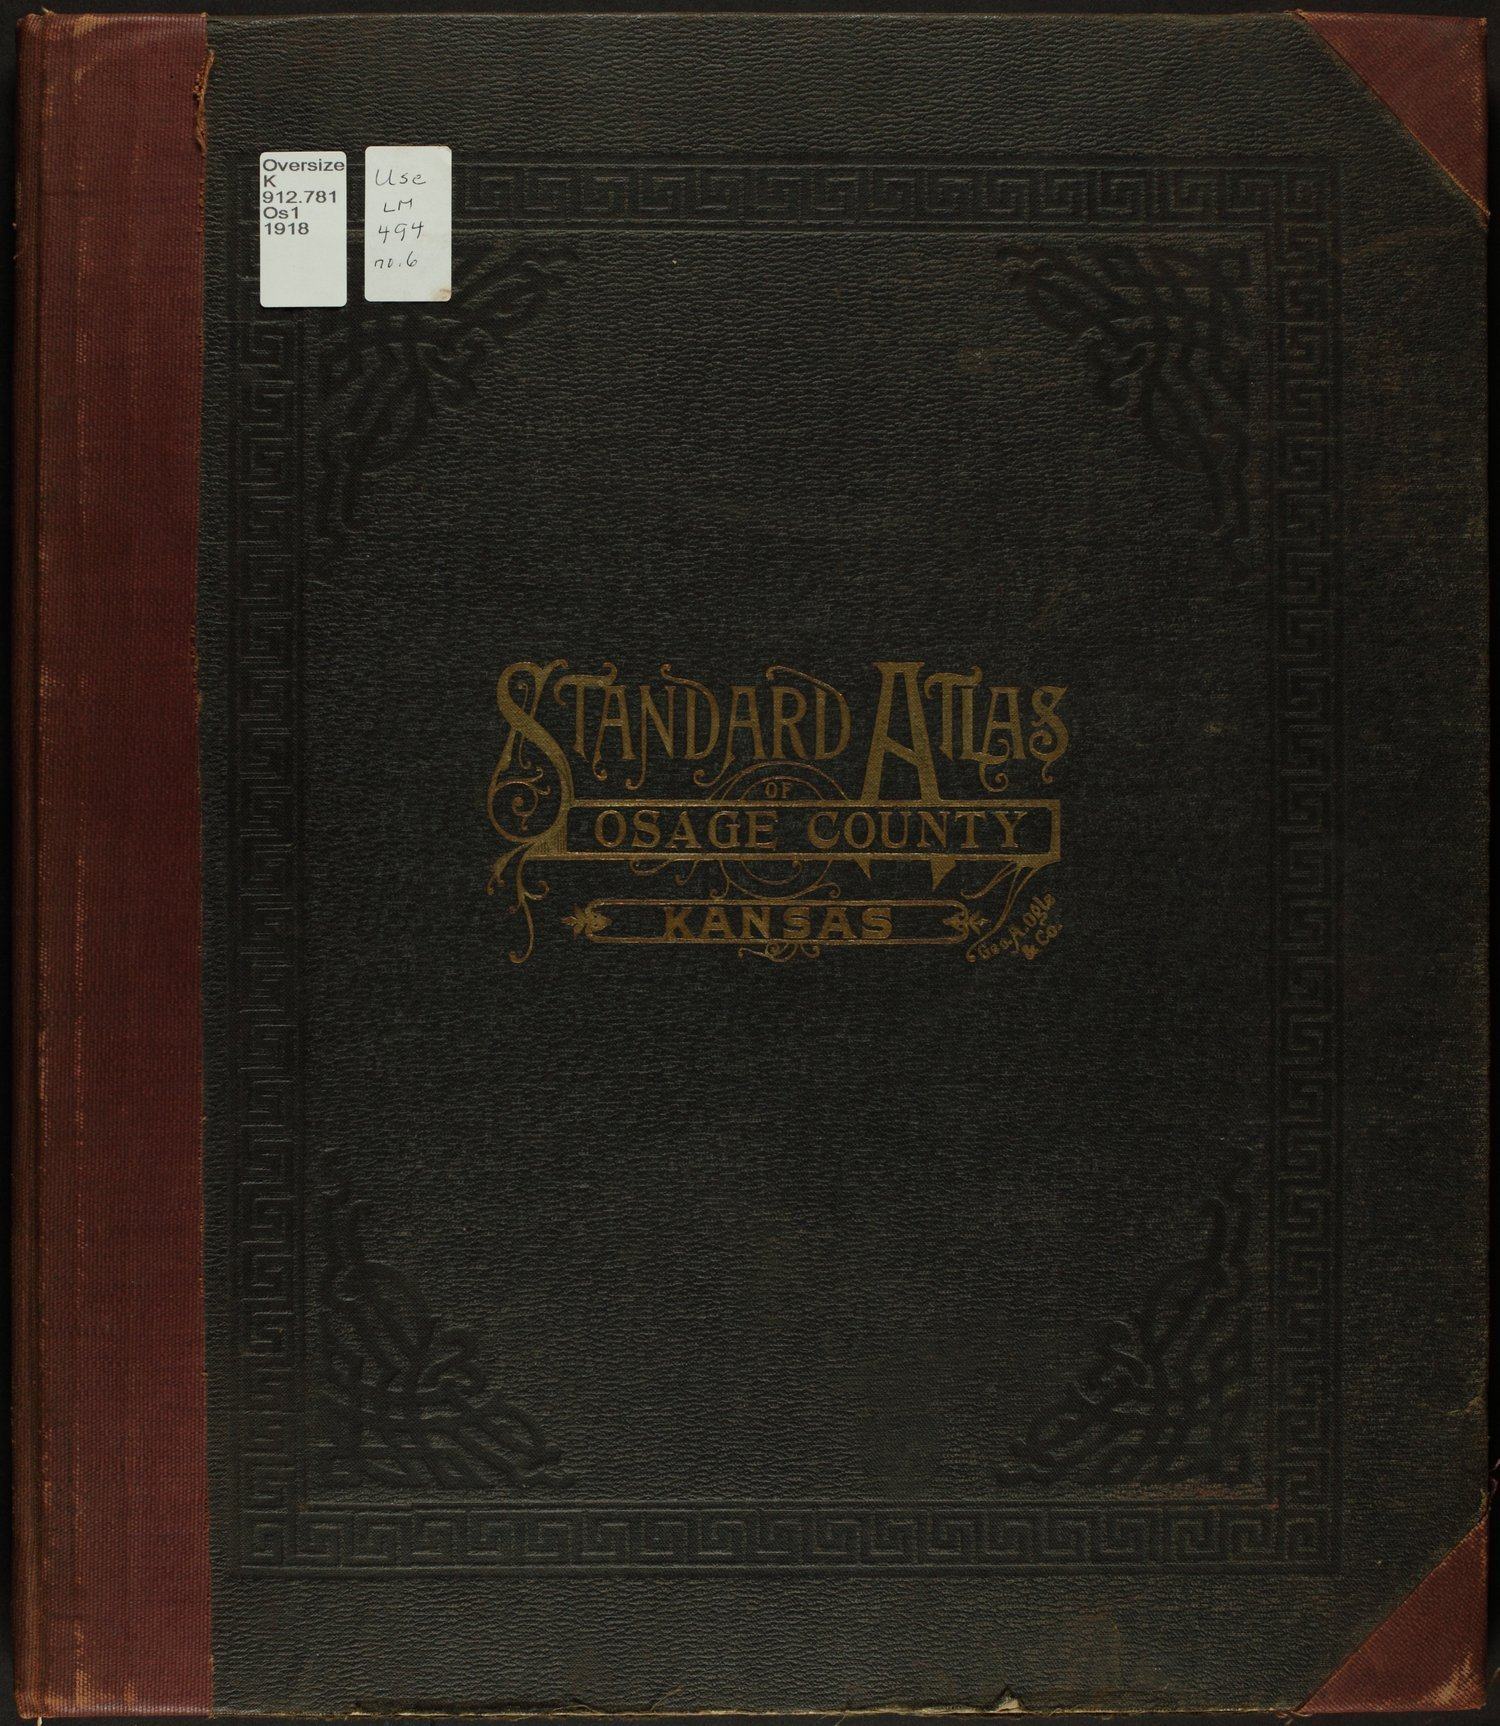 Standard atlas of Osage County, Kansas - Front Cover